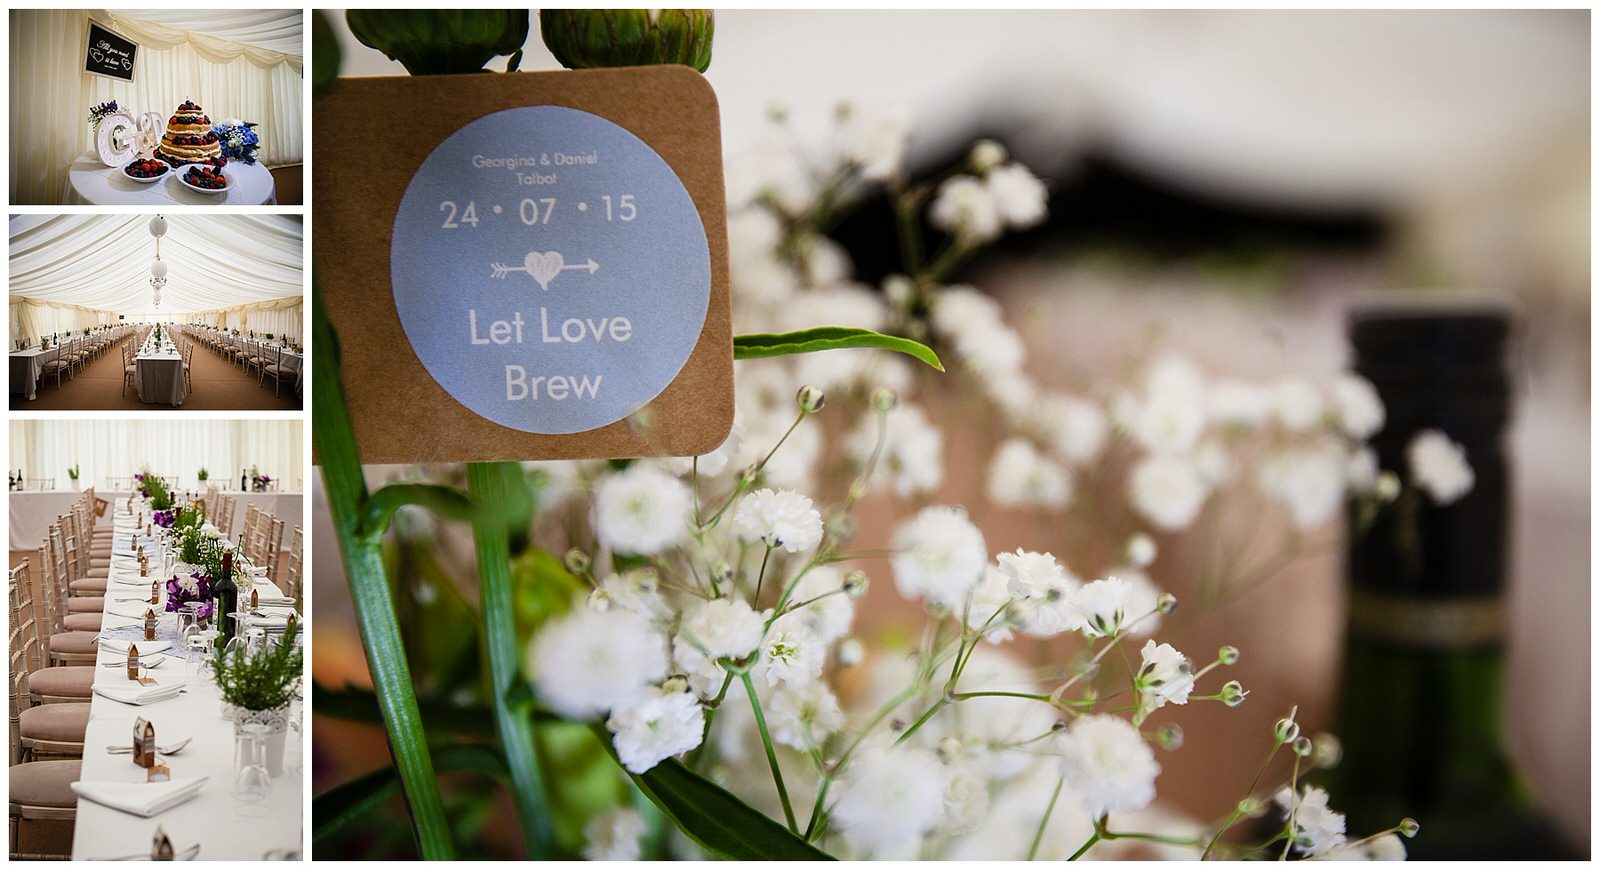 Detail shots with flowers, wedding favours and marquee layout - Charlotte Giddings Photography